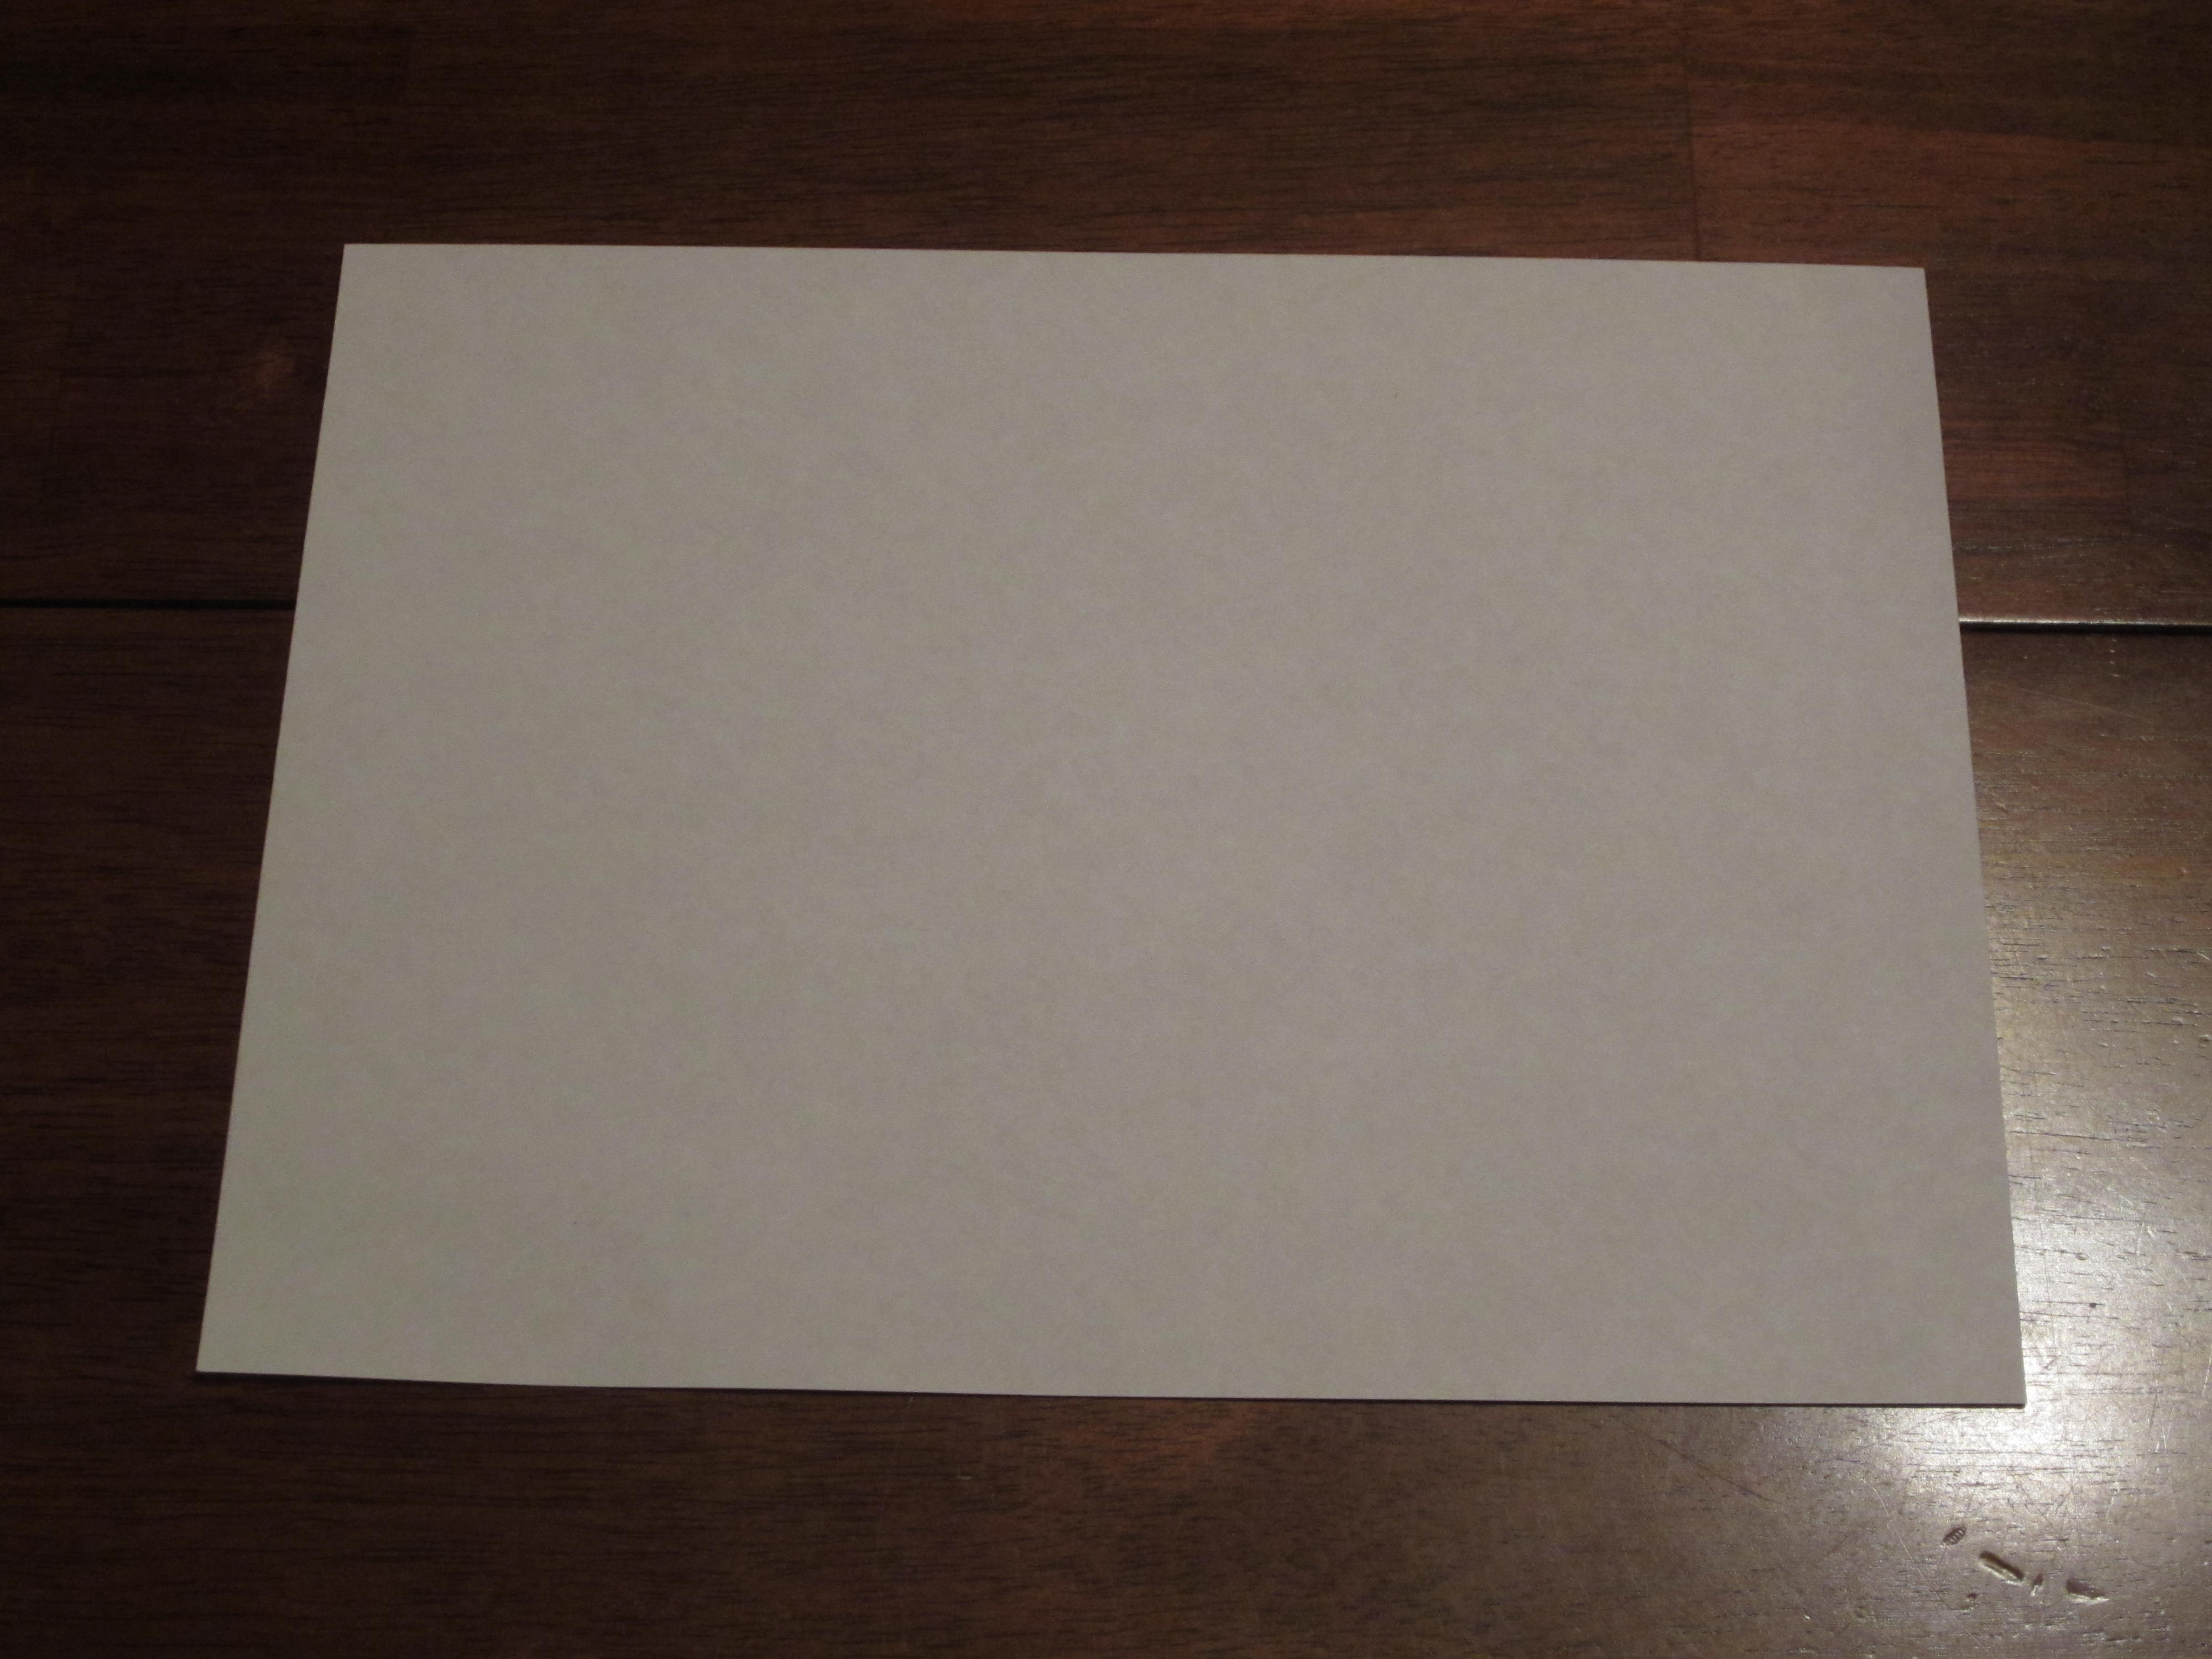 How to make scrapbook with construction paper - Start With A Sheet Of Paper Either Construction Paper Or Scrapbooking Paper Work Great This Is A 8 10 Piece I Am Using